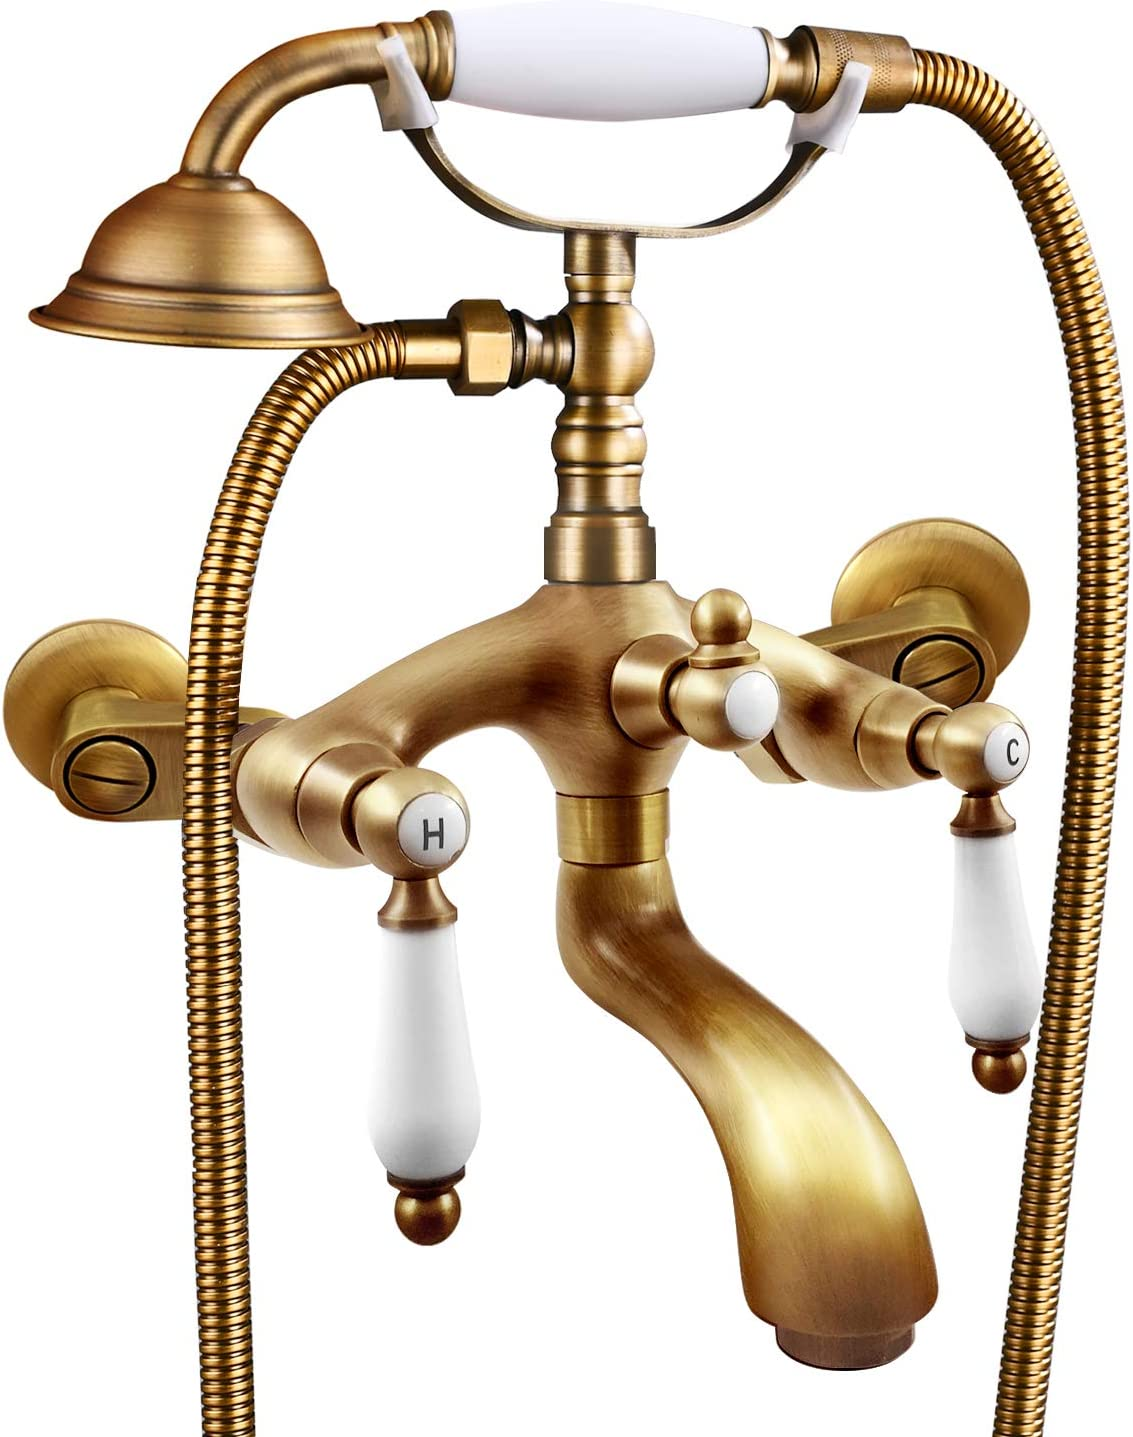 Antique Copper Wall Mount Clawfoot Bath Tub Faucet with Hand Shower Mixer Tap